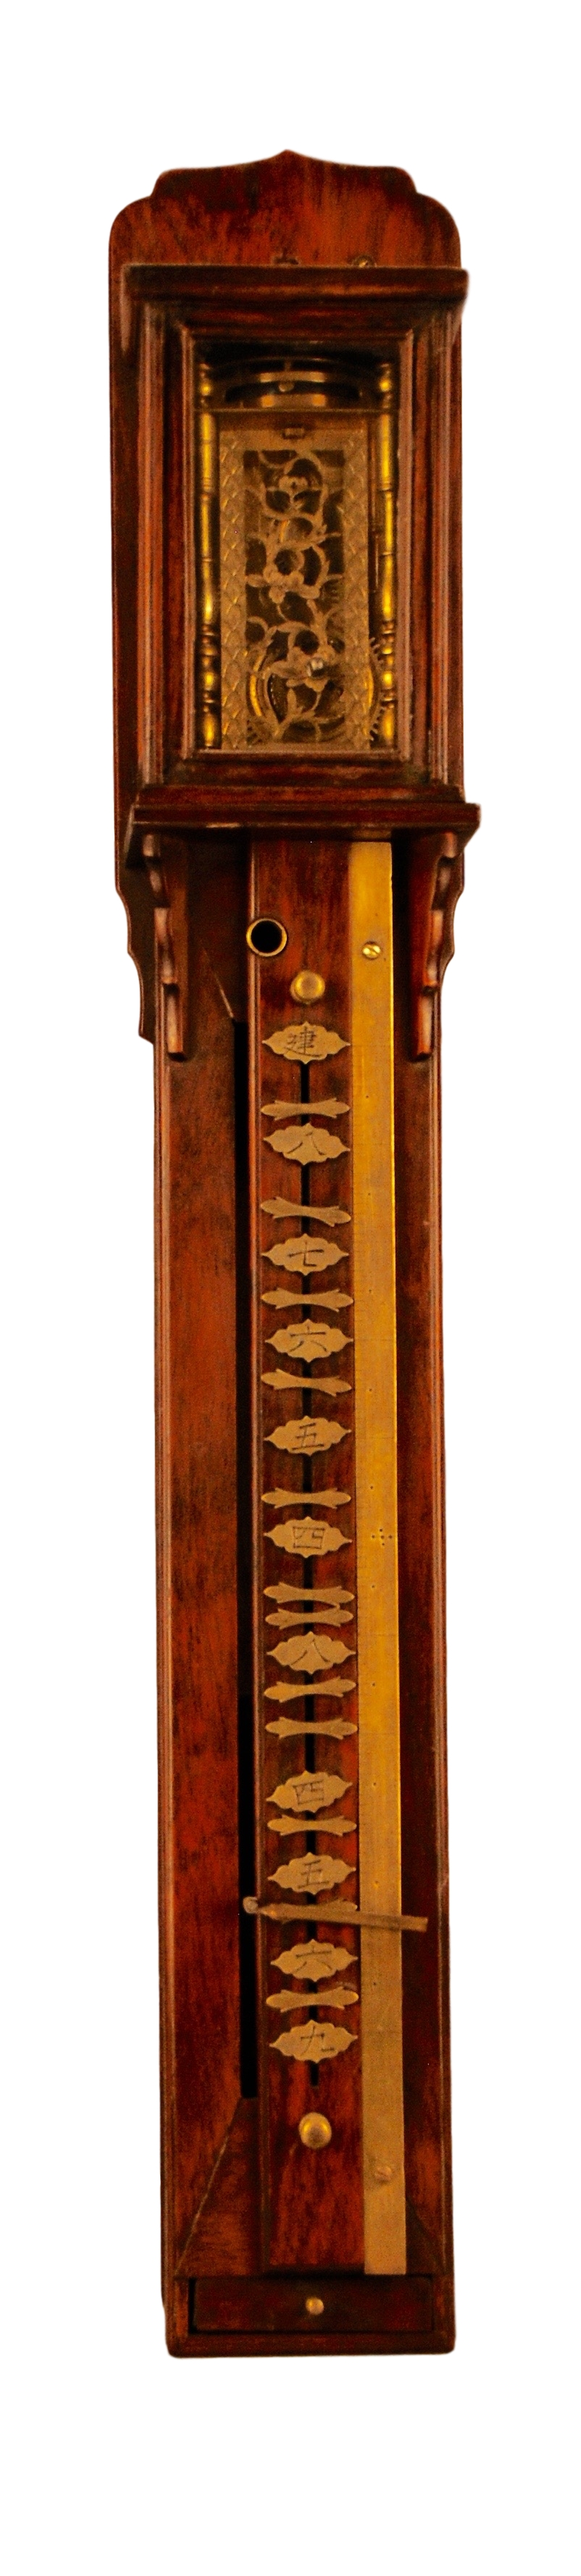 c.1850 Miniature Japanese Wood Pillar Clock with striking on a bel.